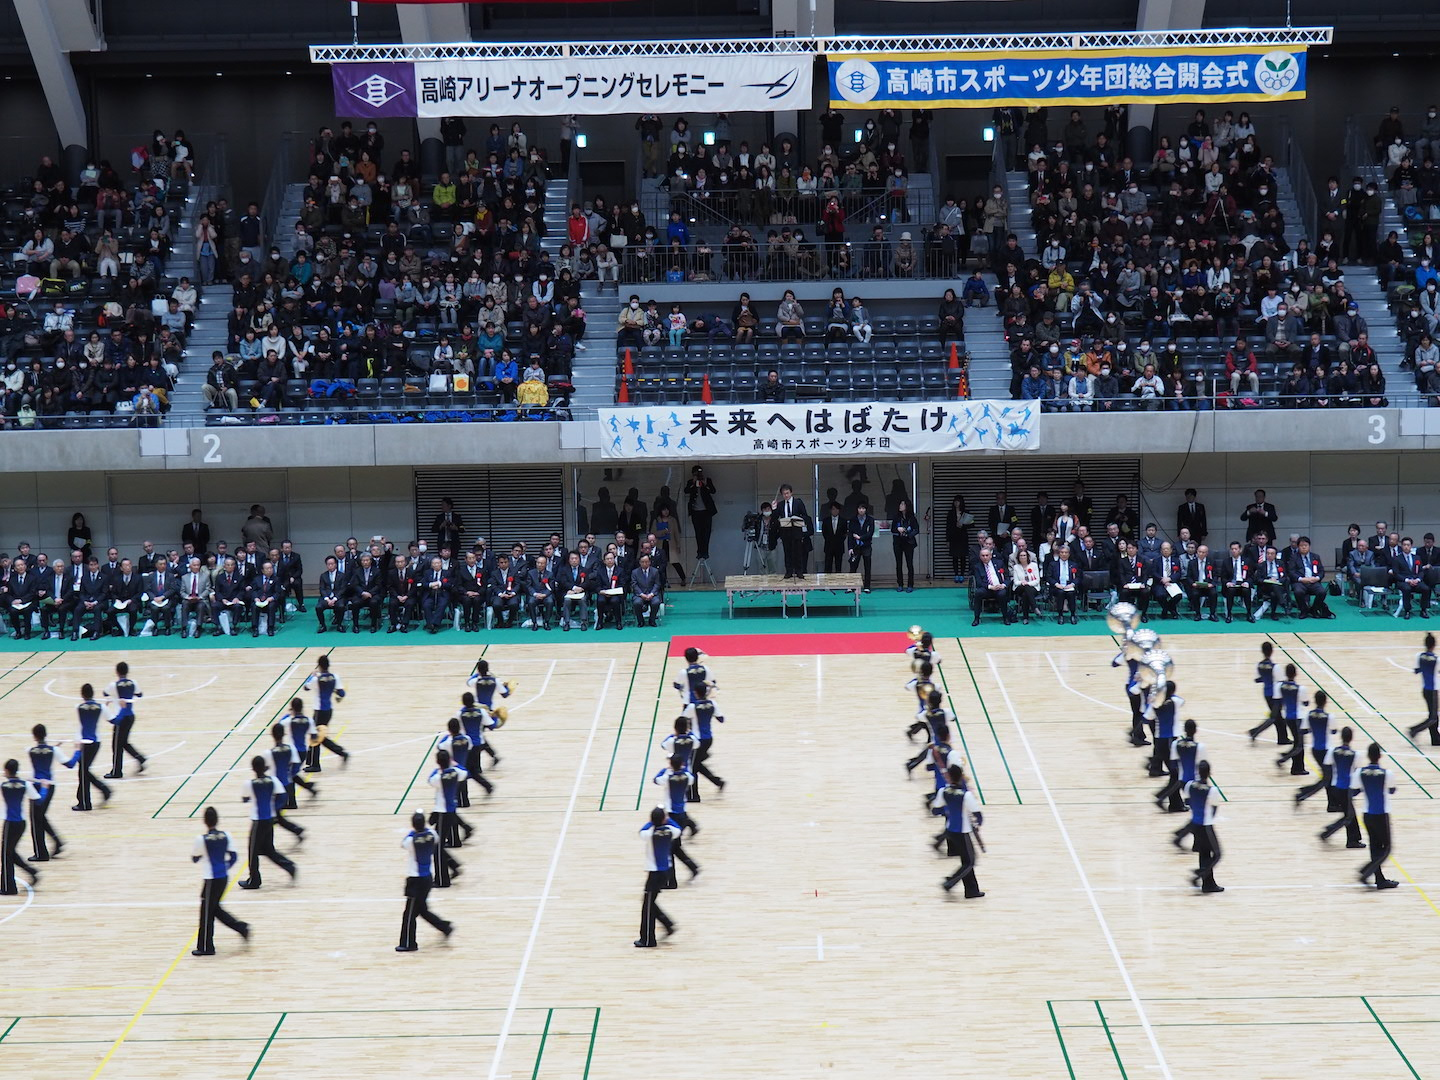 Takasaki Arena Opening Ceremony<br />Performed by<br />The Tsukasawa Junior High School Marching Band 5